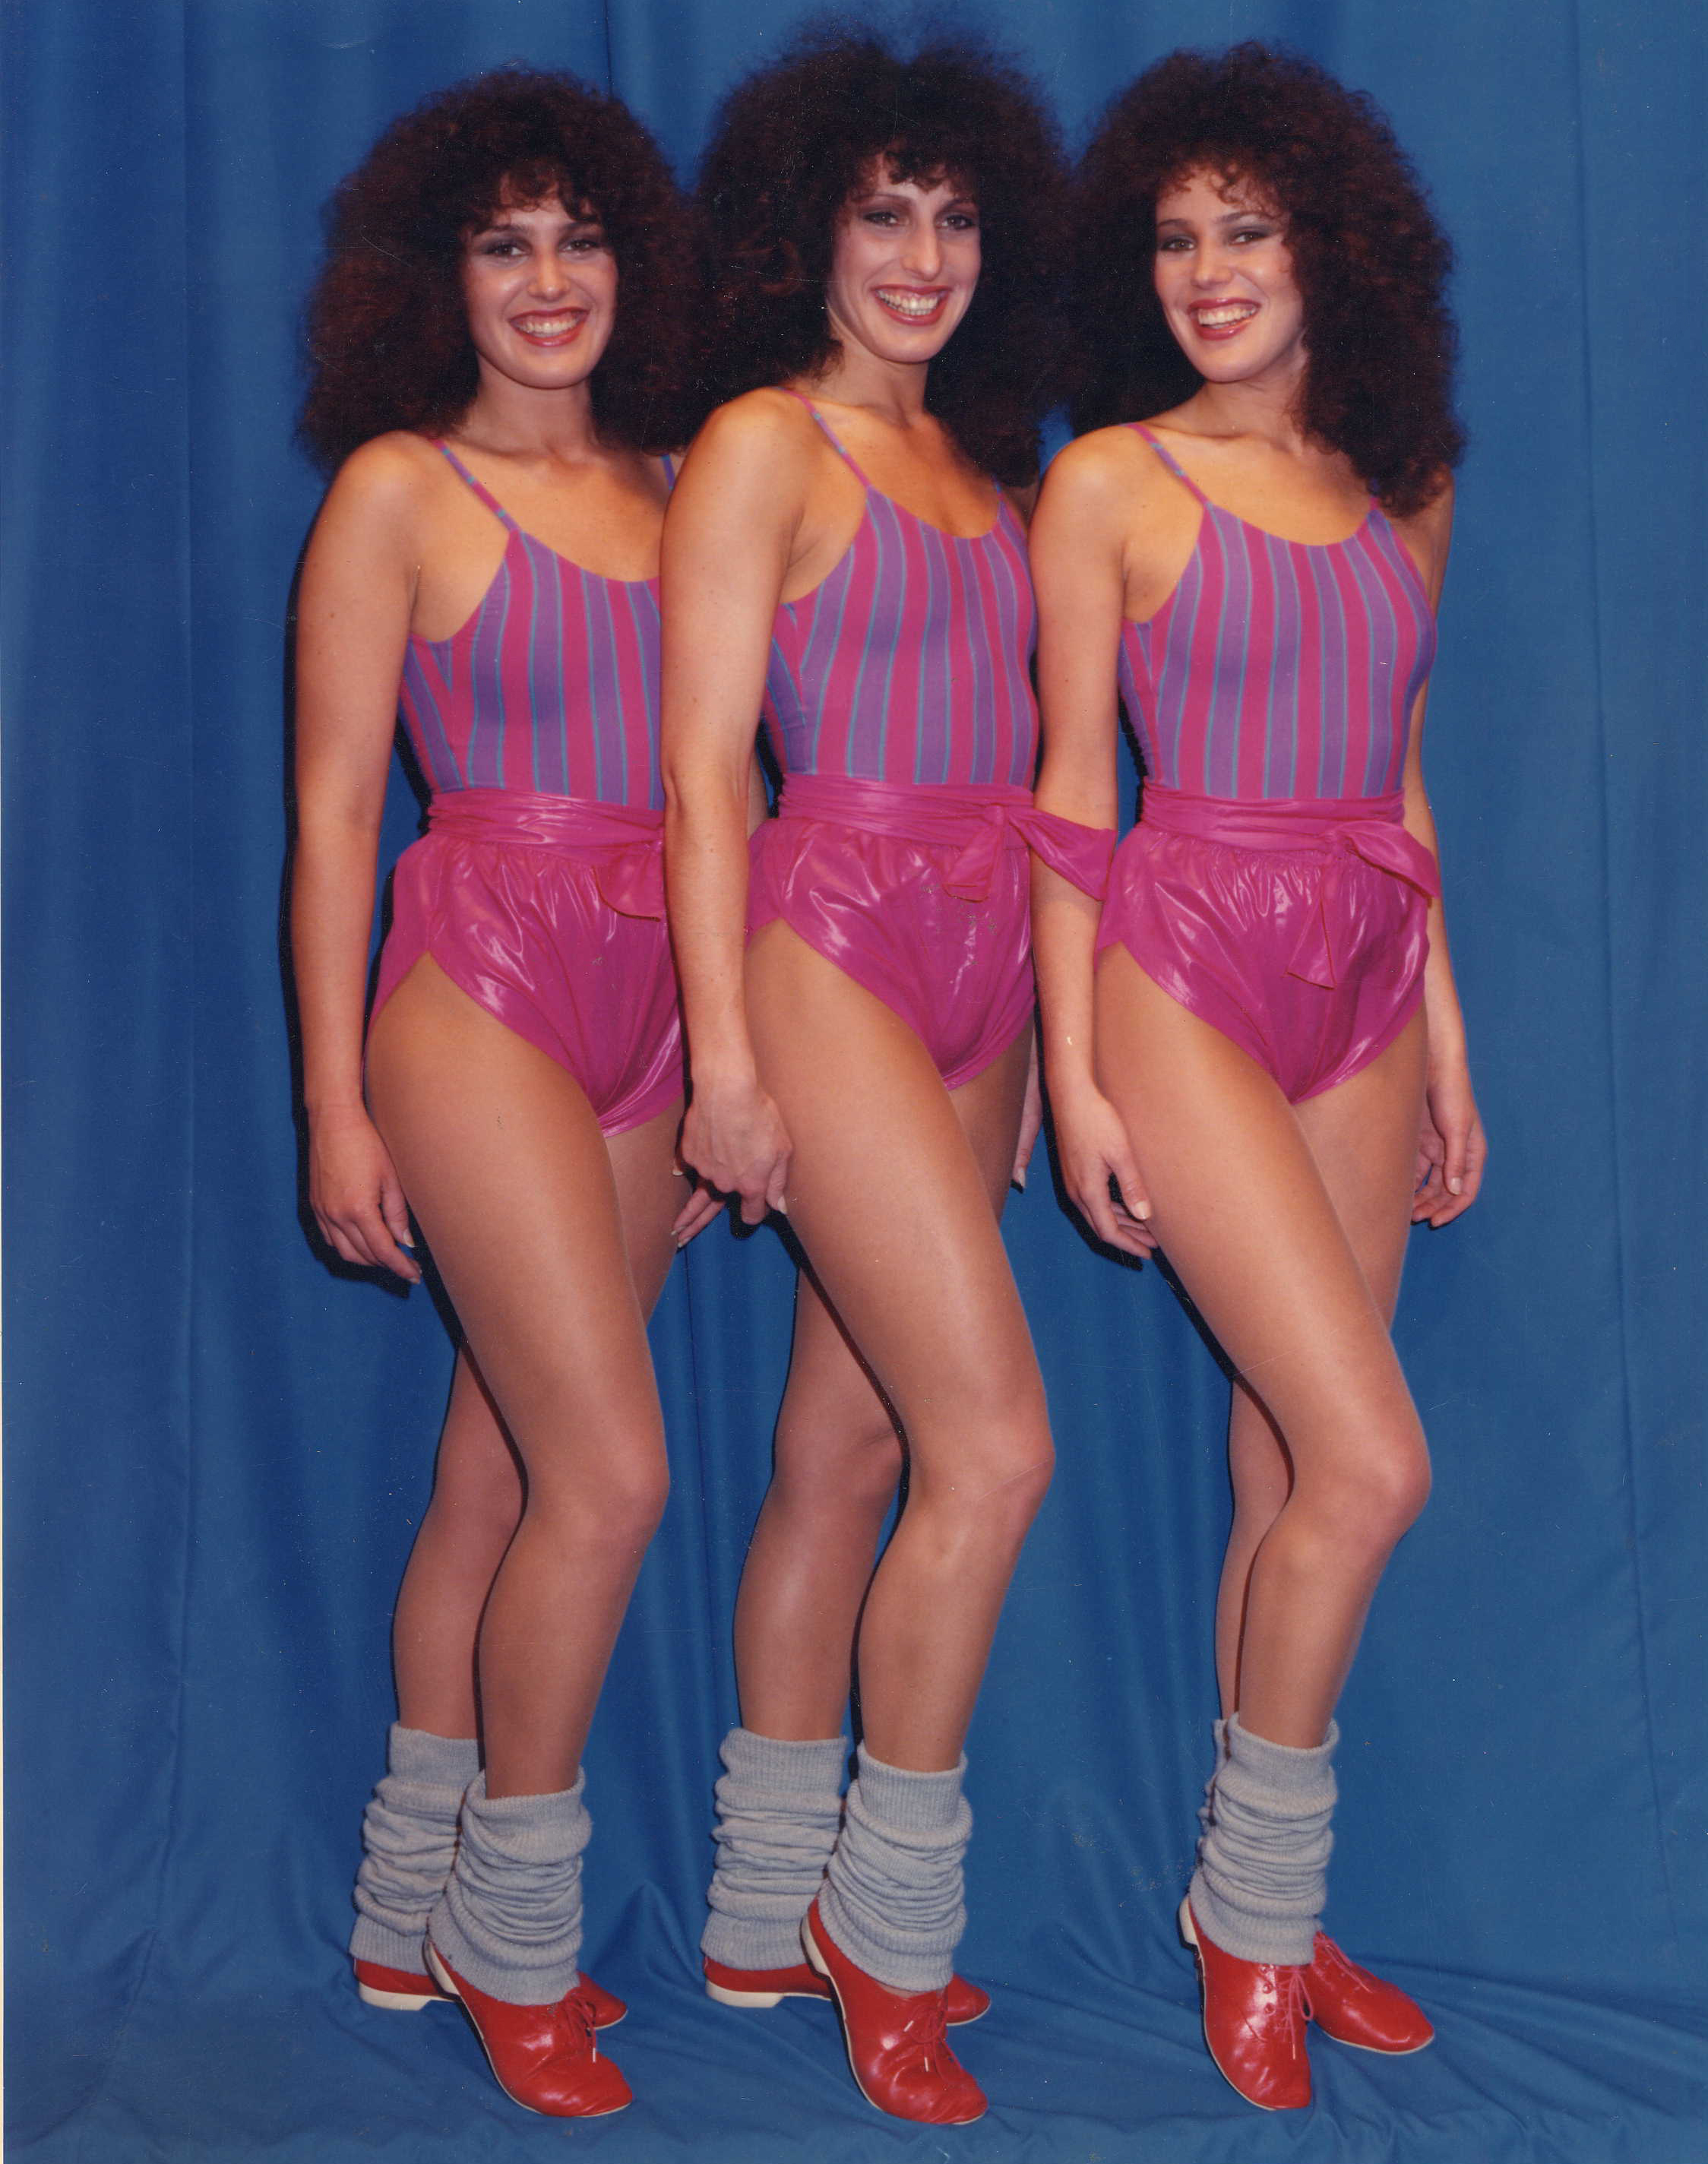 The Rancan Sisters found international fame in the 1990's.